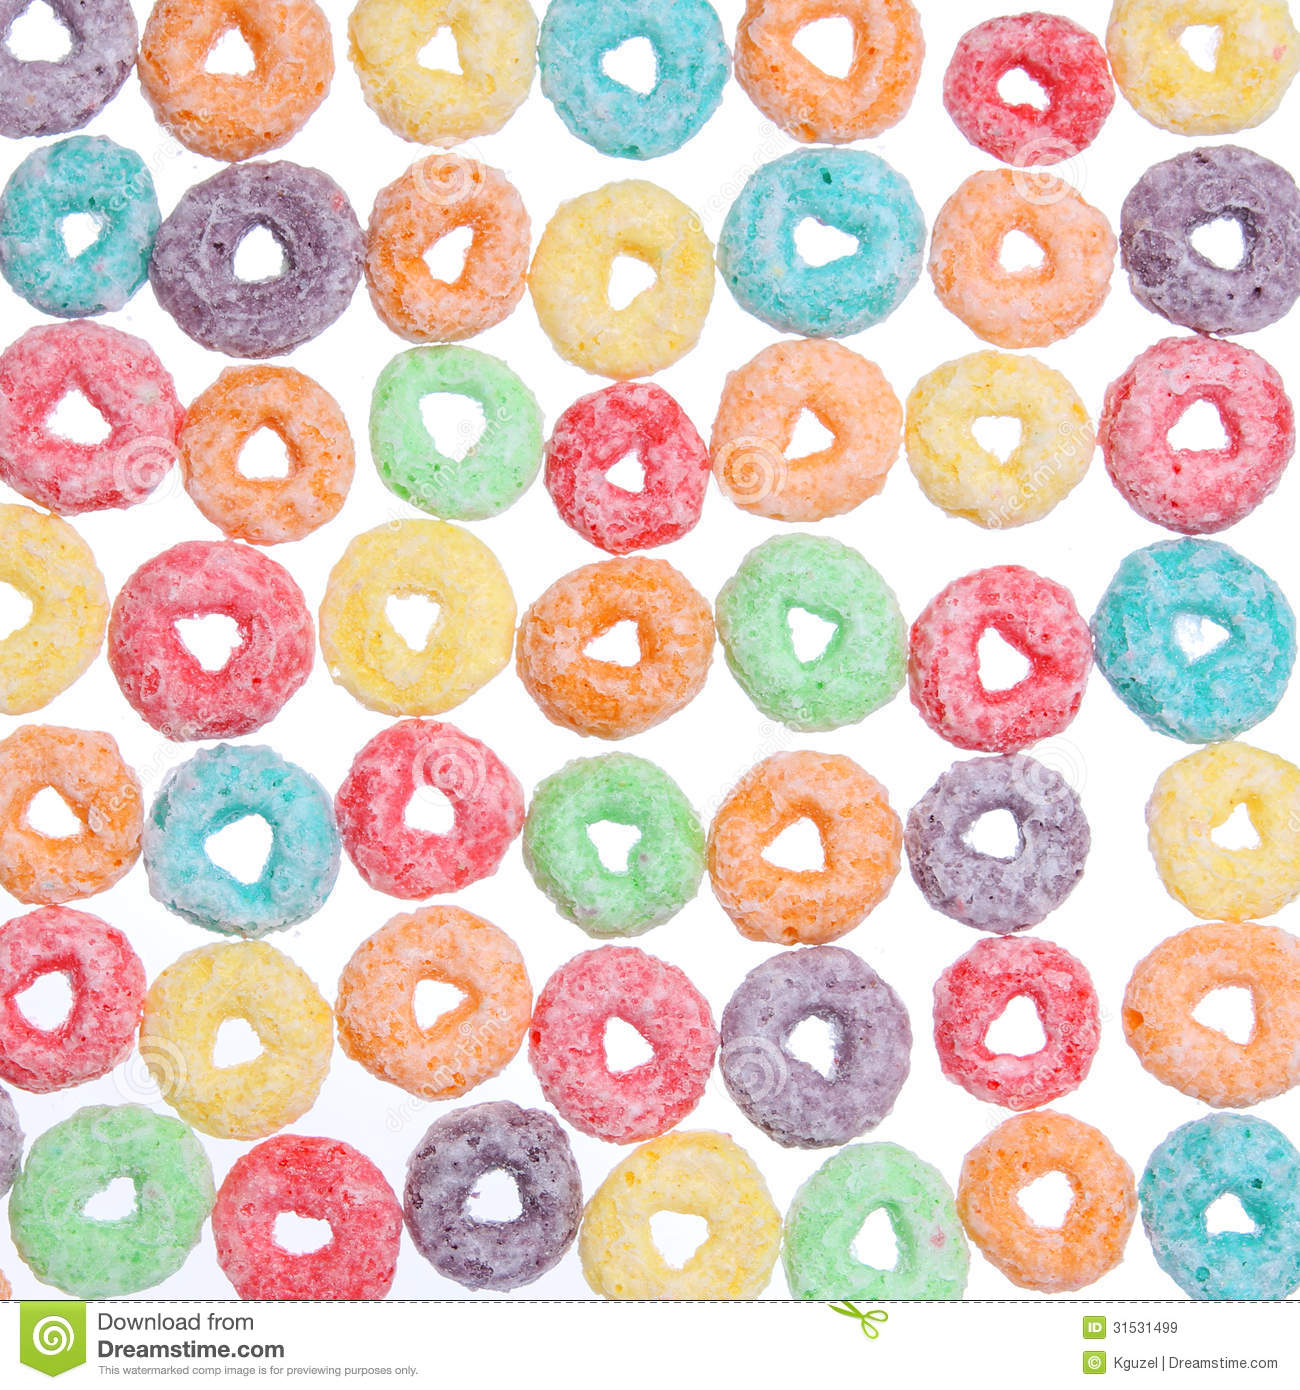 Colored Cereal Loops, Texture Stock Image - Image of colored